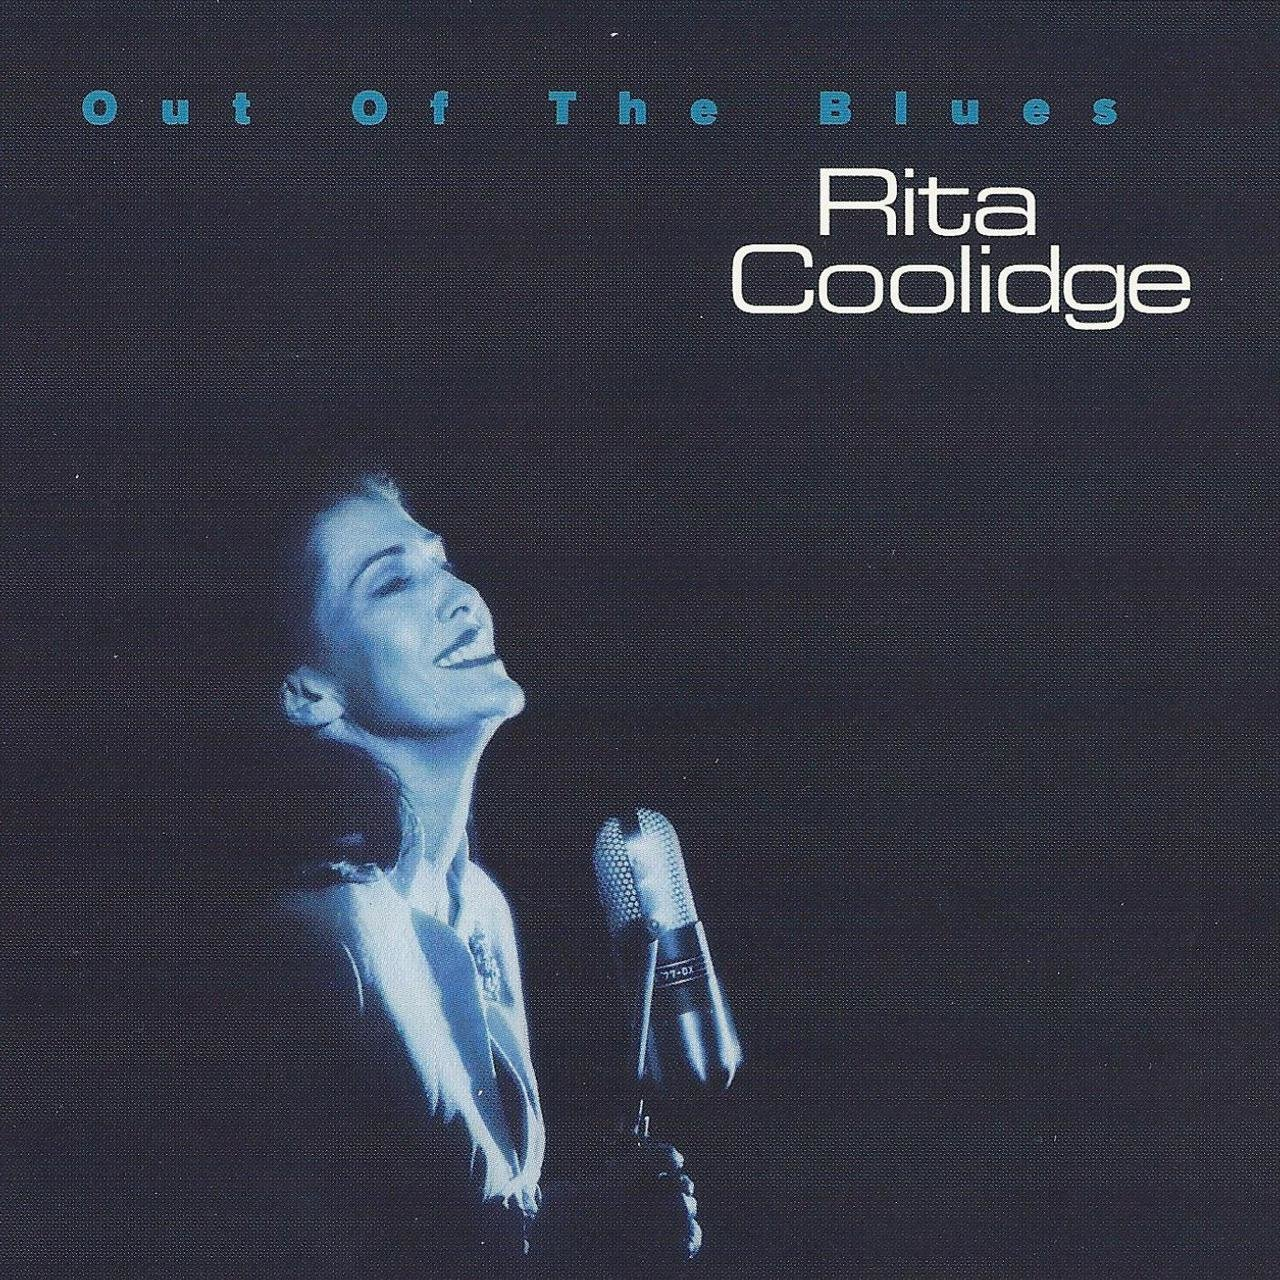 Rita Coolidge - Out of the Blues (1996)